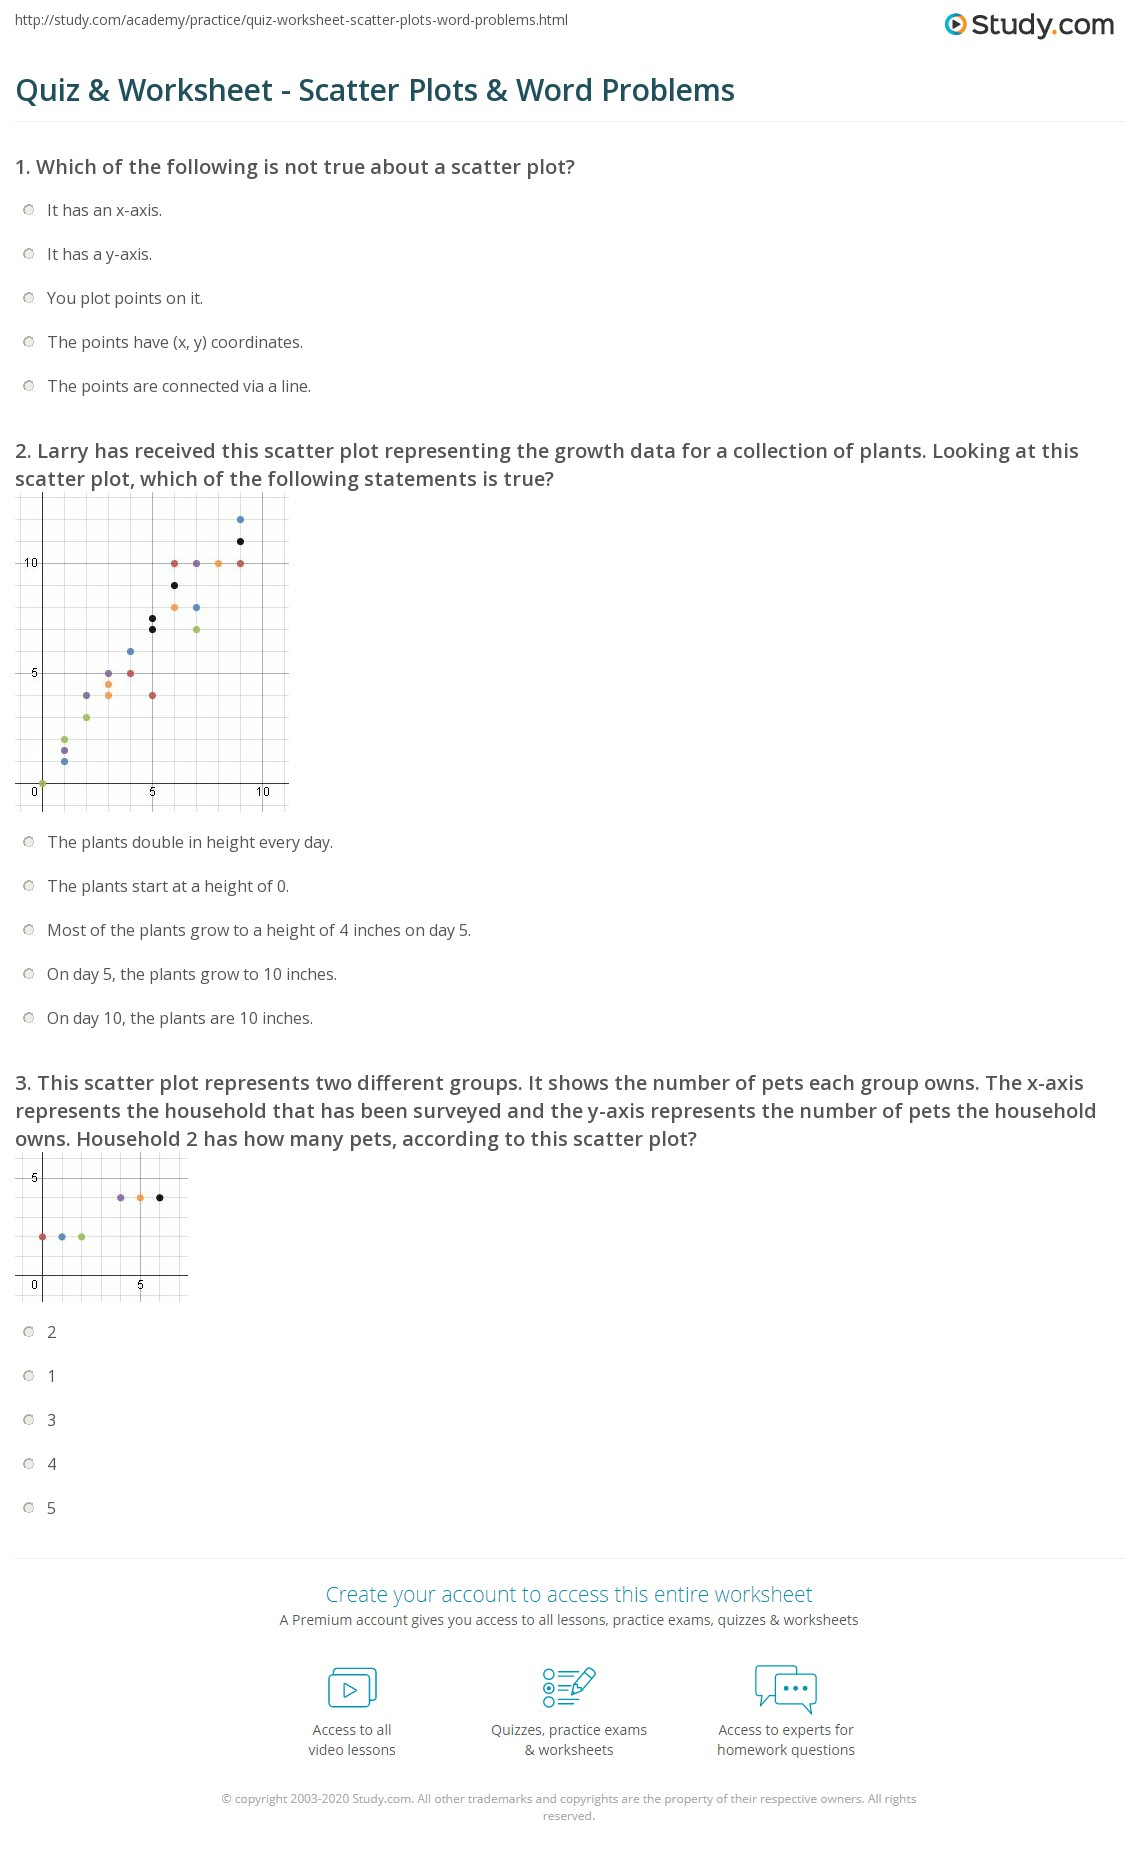 print how to use scatter plots to solve word problems worksheet - Scatter Plot Worksheet